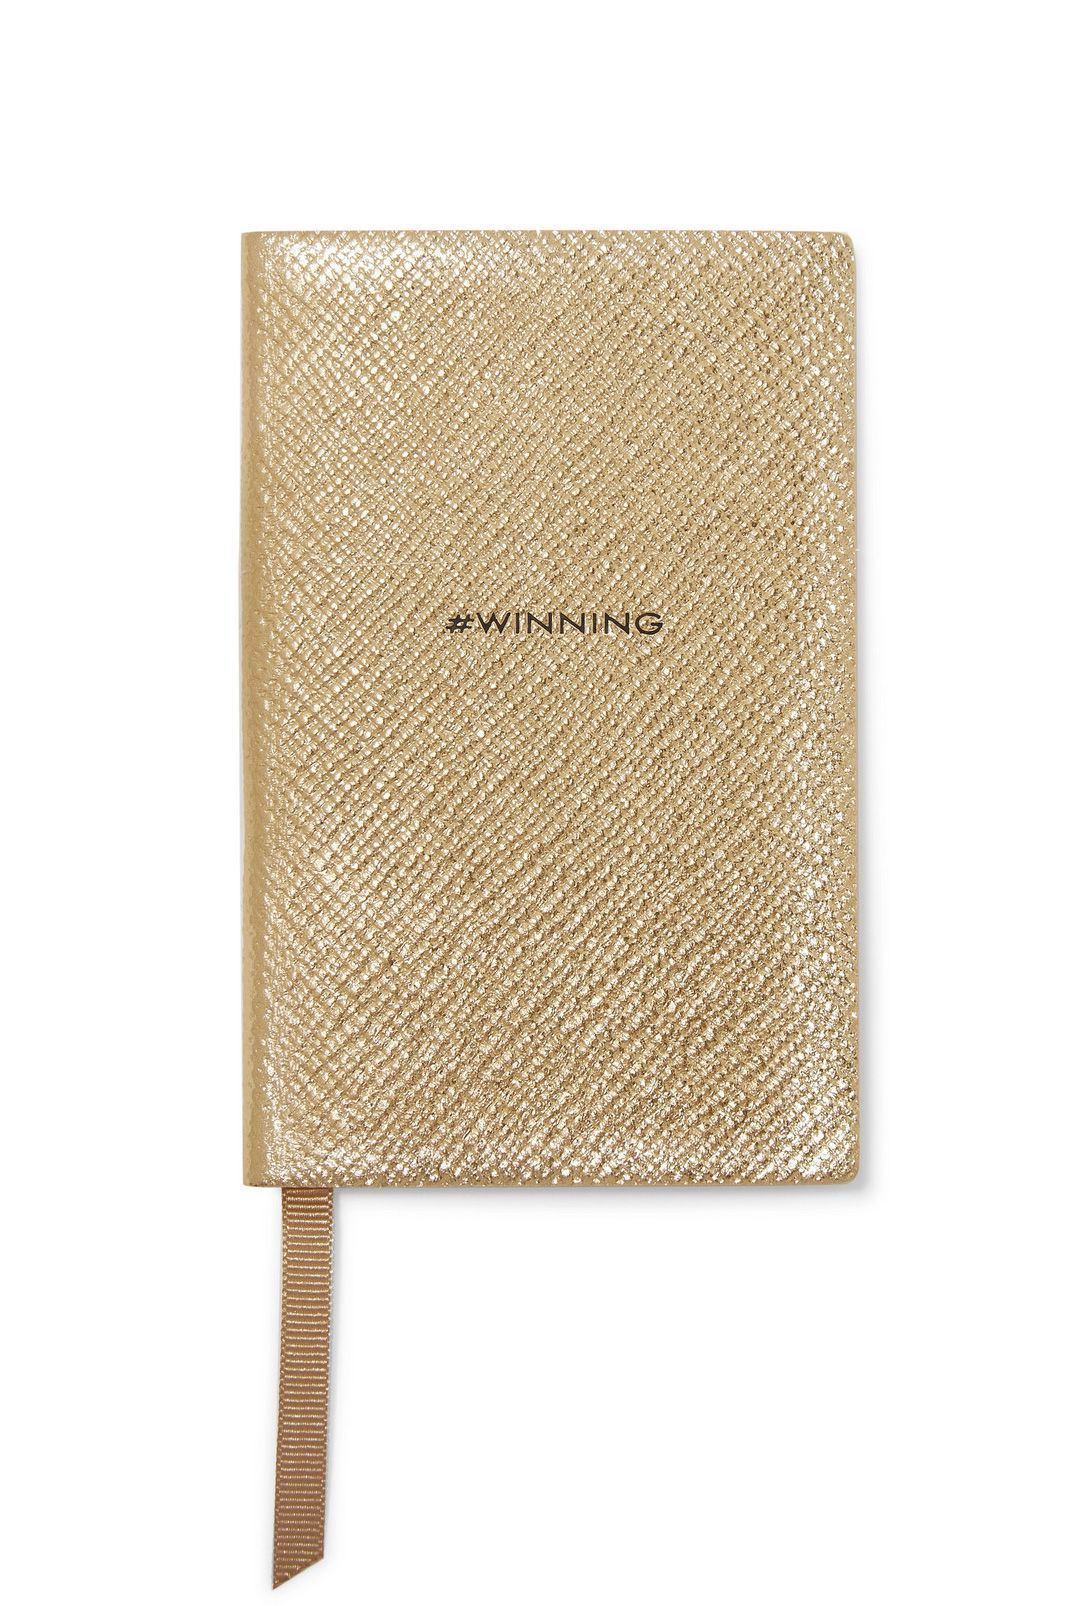 A Journal Smythson Net-a-Porter $60.00 SHOP IT Moms lead very busy lives; help her stay focused and organized with this gold journal. Mothers are always winners in our book, so the hashtag on the front is appropriate.